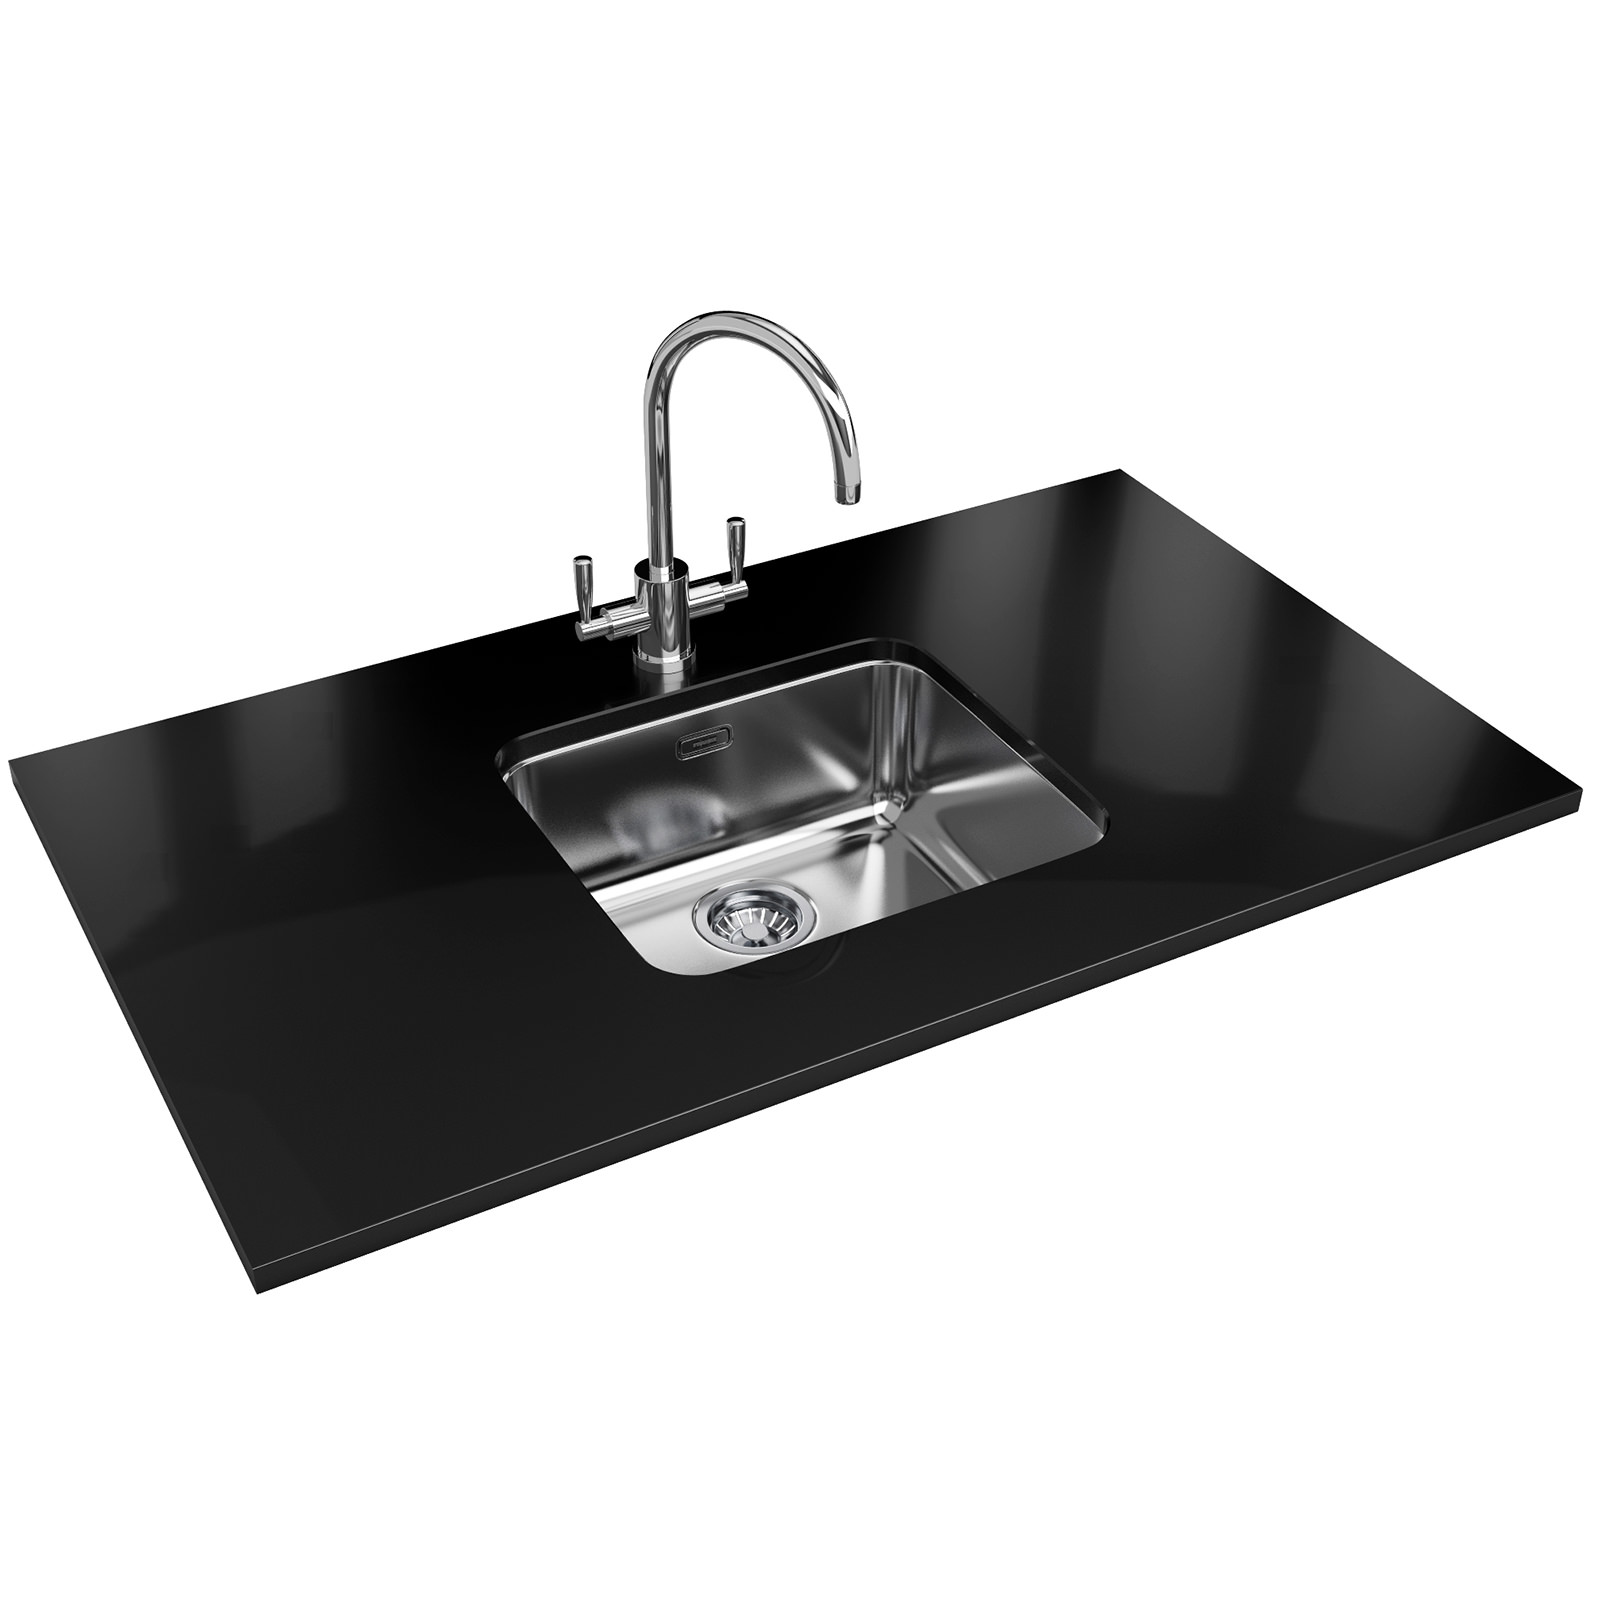 franke largo lax 110 45 stainless steel 1.0 bowl undermount sink